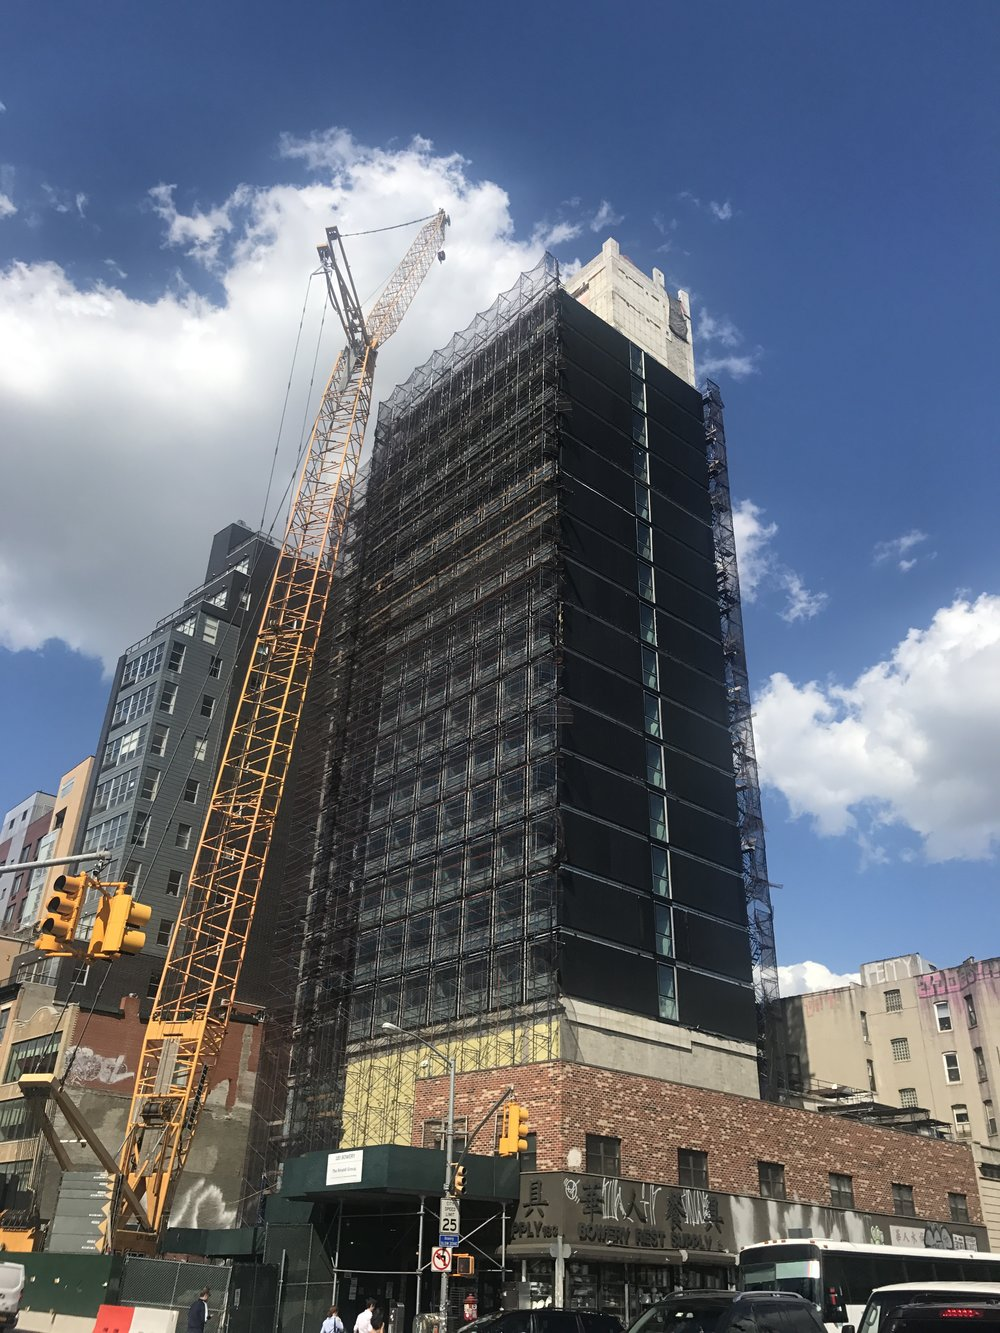 189 Bowery Street (in progress) - Client: citizenM HotelsArchitect: Stephen B Jacobs Group, PC 19-Story, 100,000 sf tallest modular Hotel in the world Services Provided:• Research, Zoning, and Code Consulting• Filing and Approval of all DOB and FDNY related new building applications        • Condo Subdivision• Permit Procurement• Certificate of Occupancy• Walk-through Inspections,  Application Sign-off